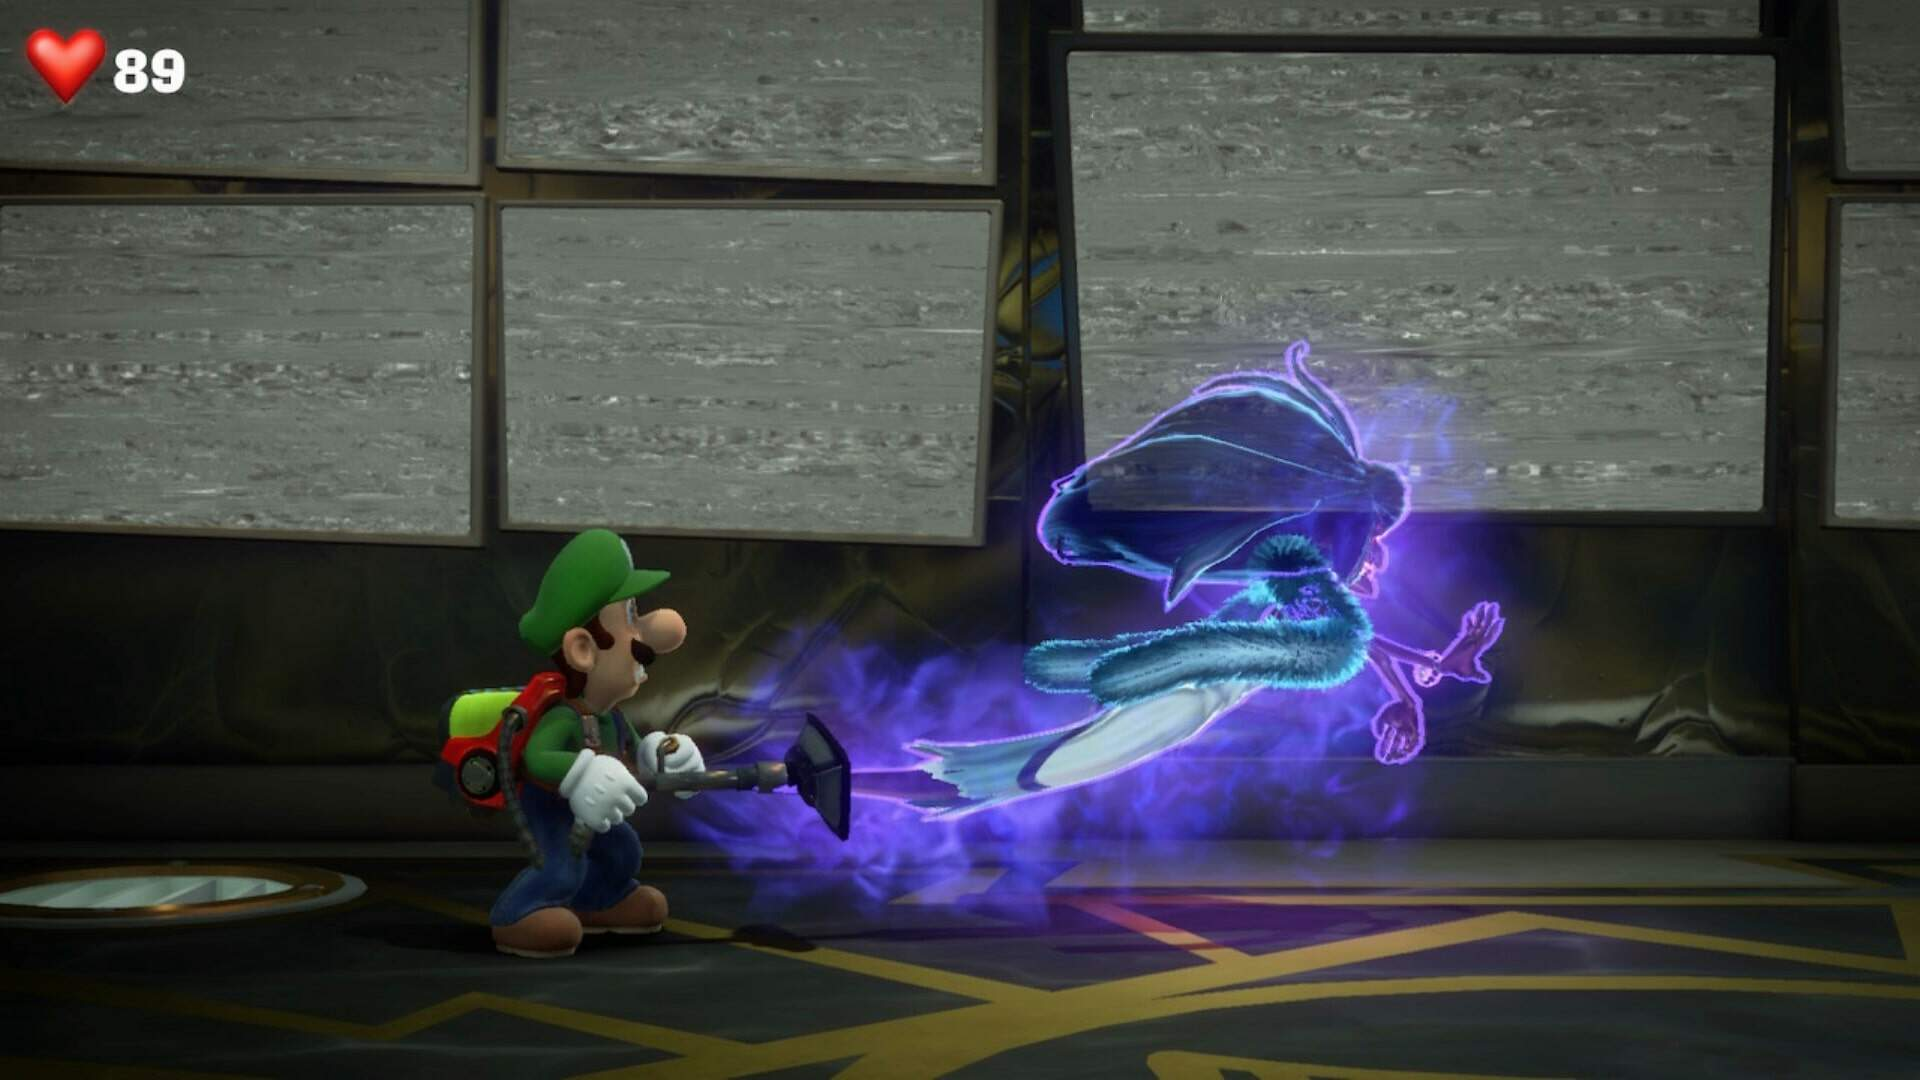 Luigi's Mansion 3 Hellen Gravely Boss Fight Walkthrough